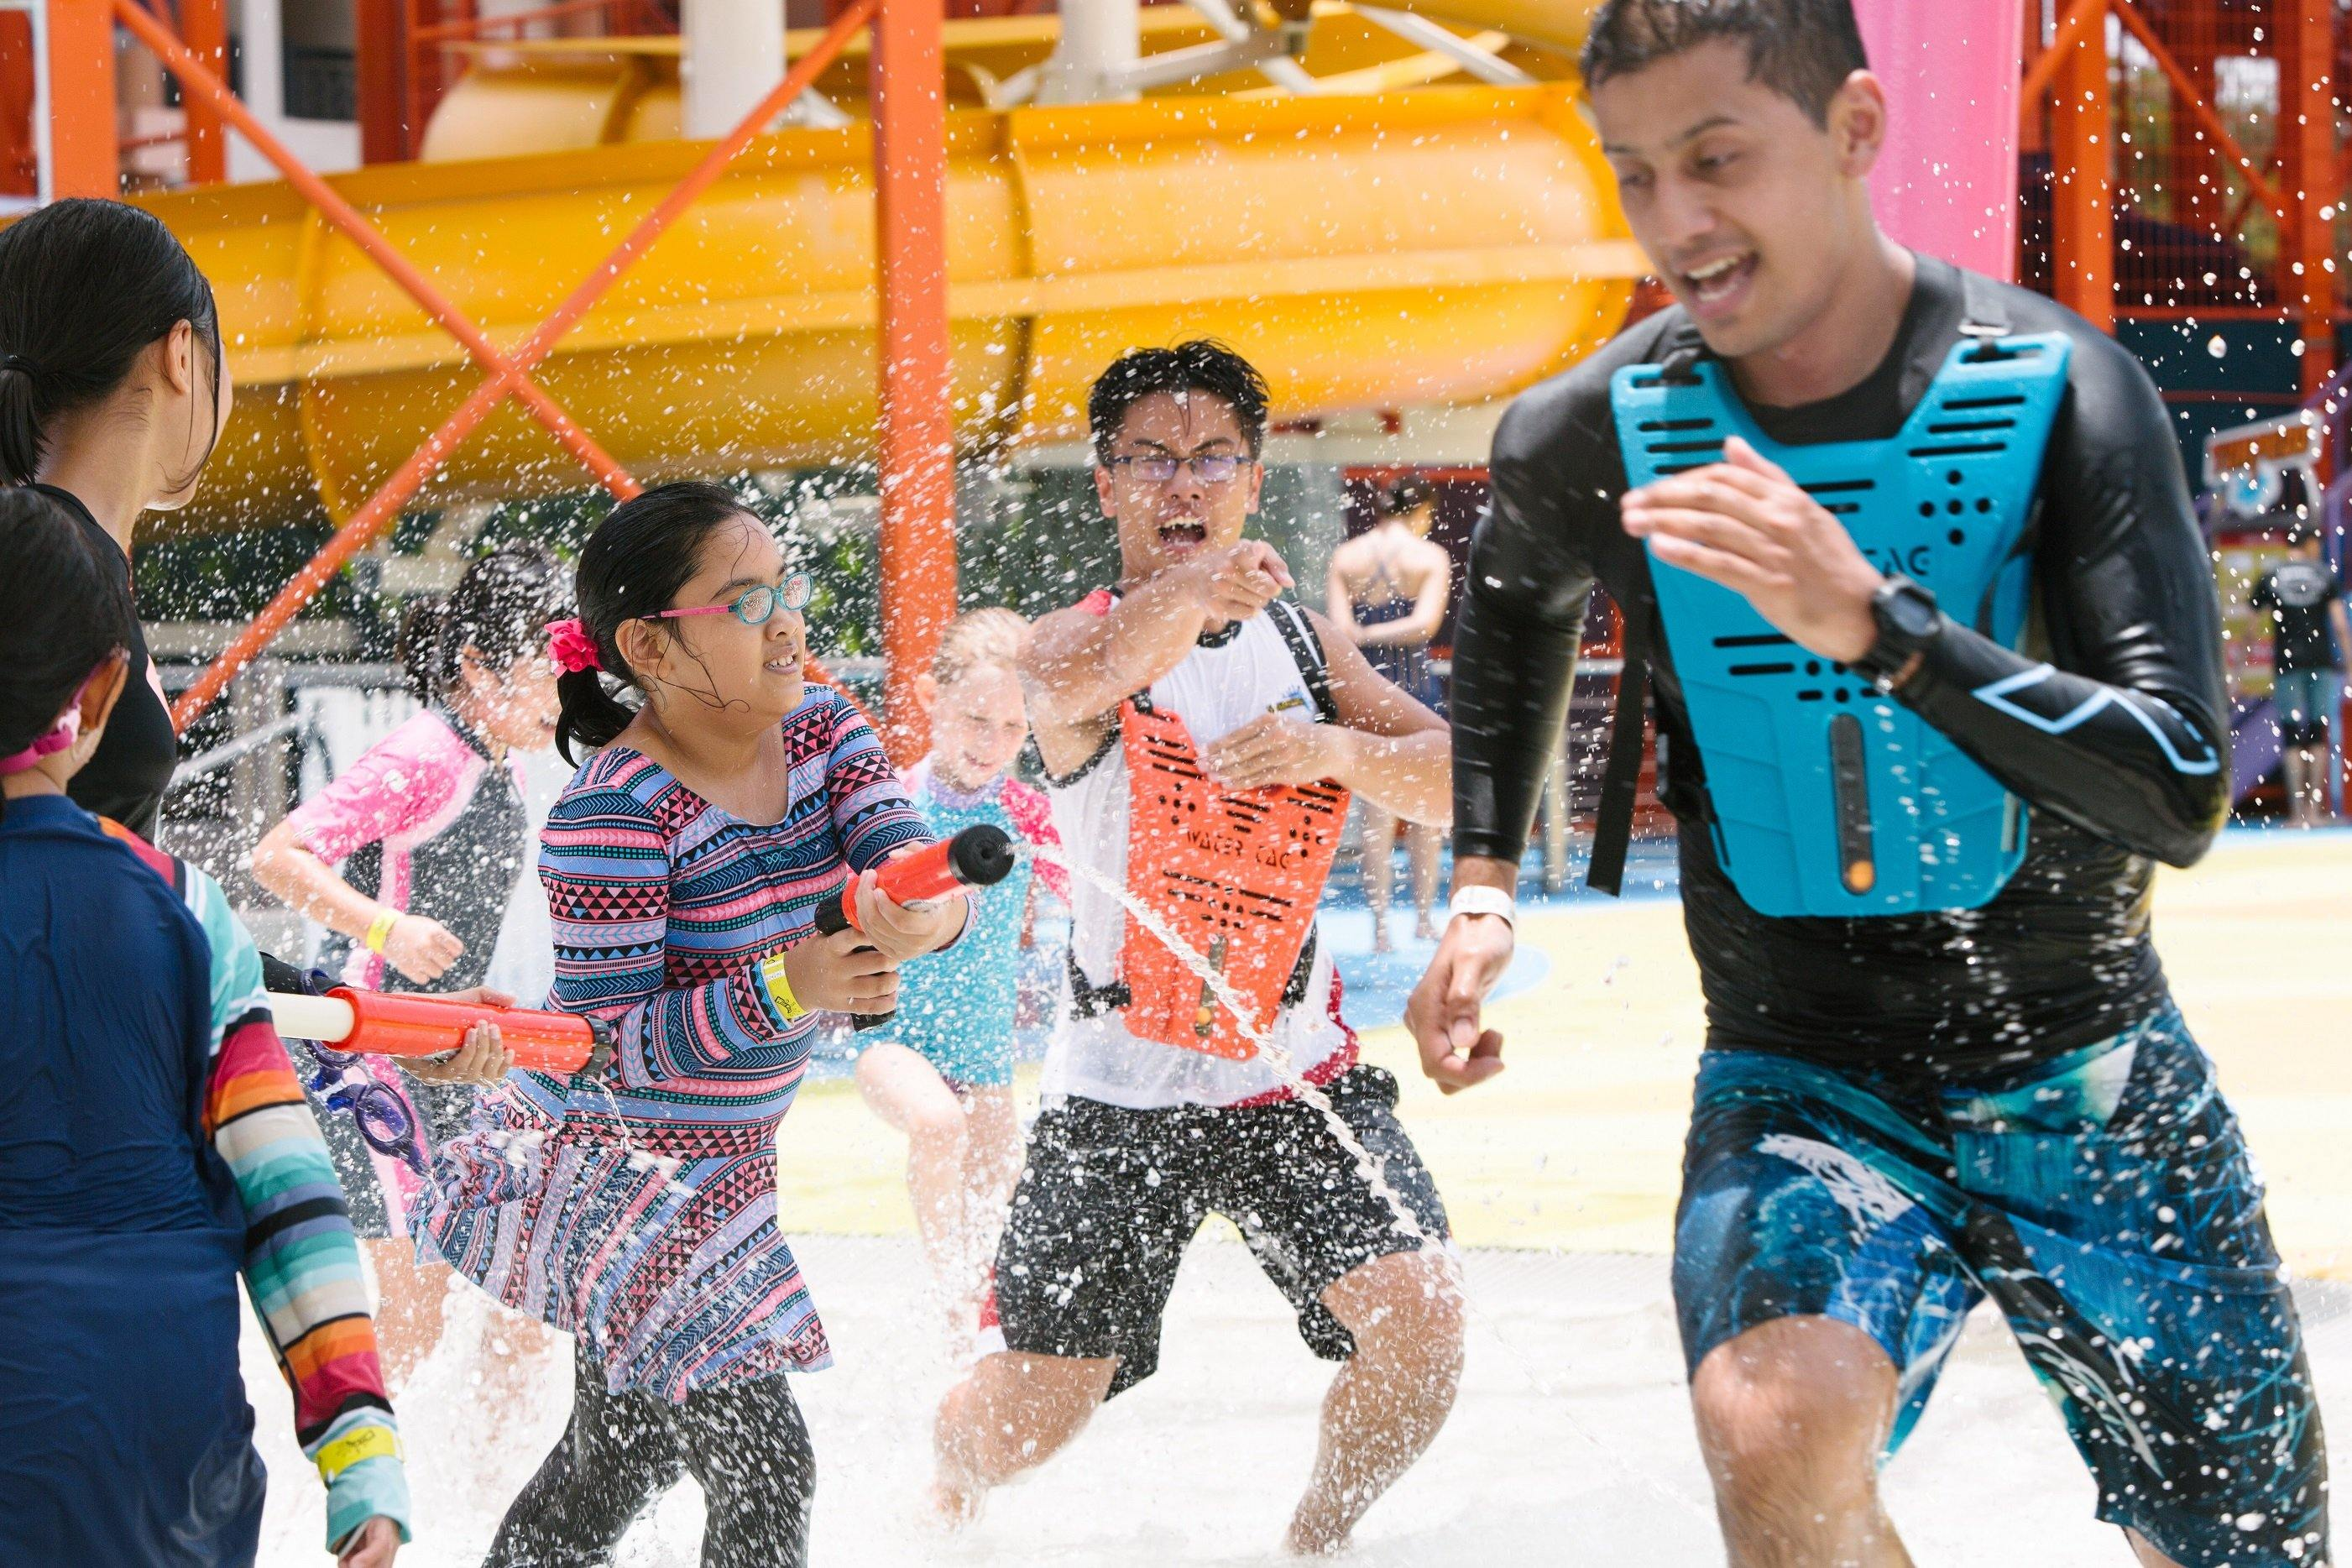 Wild Wild Wet: 15% Off Kids Birthday Party @ Neptune Cove